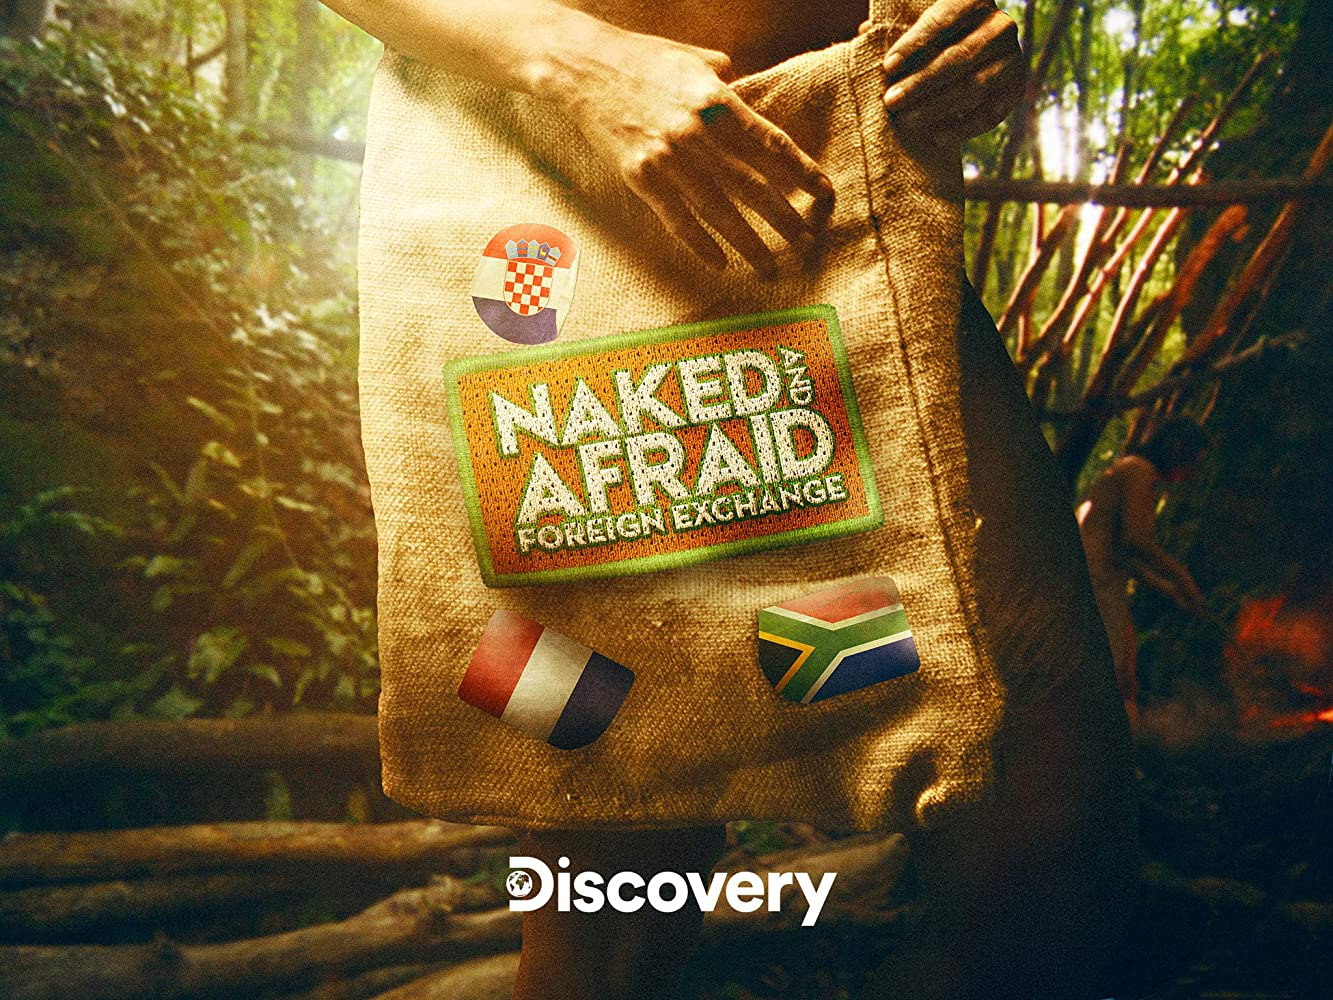 Naked and Afraid Foreign Exchange S01E03 Trouble in Paradise WEB H264-TXB